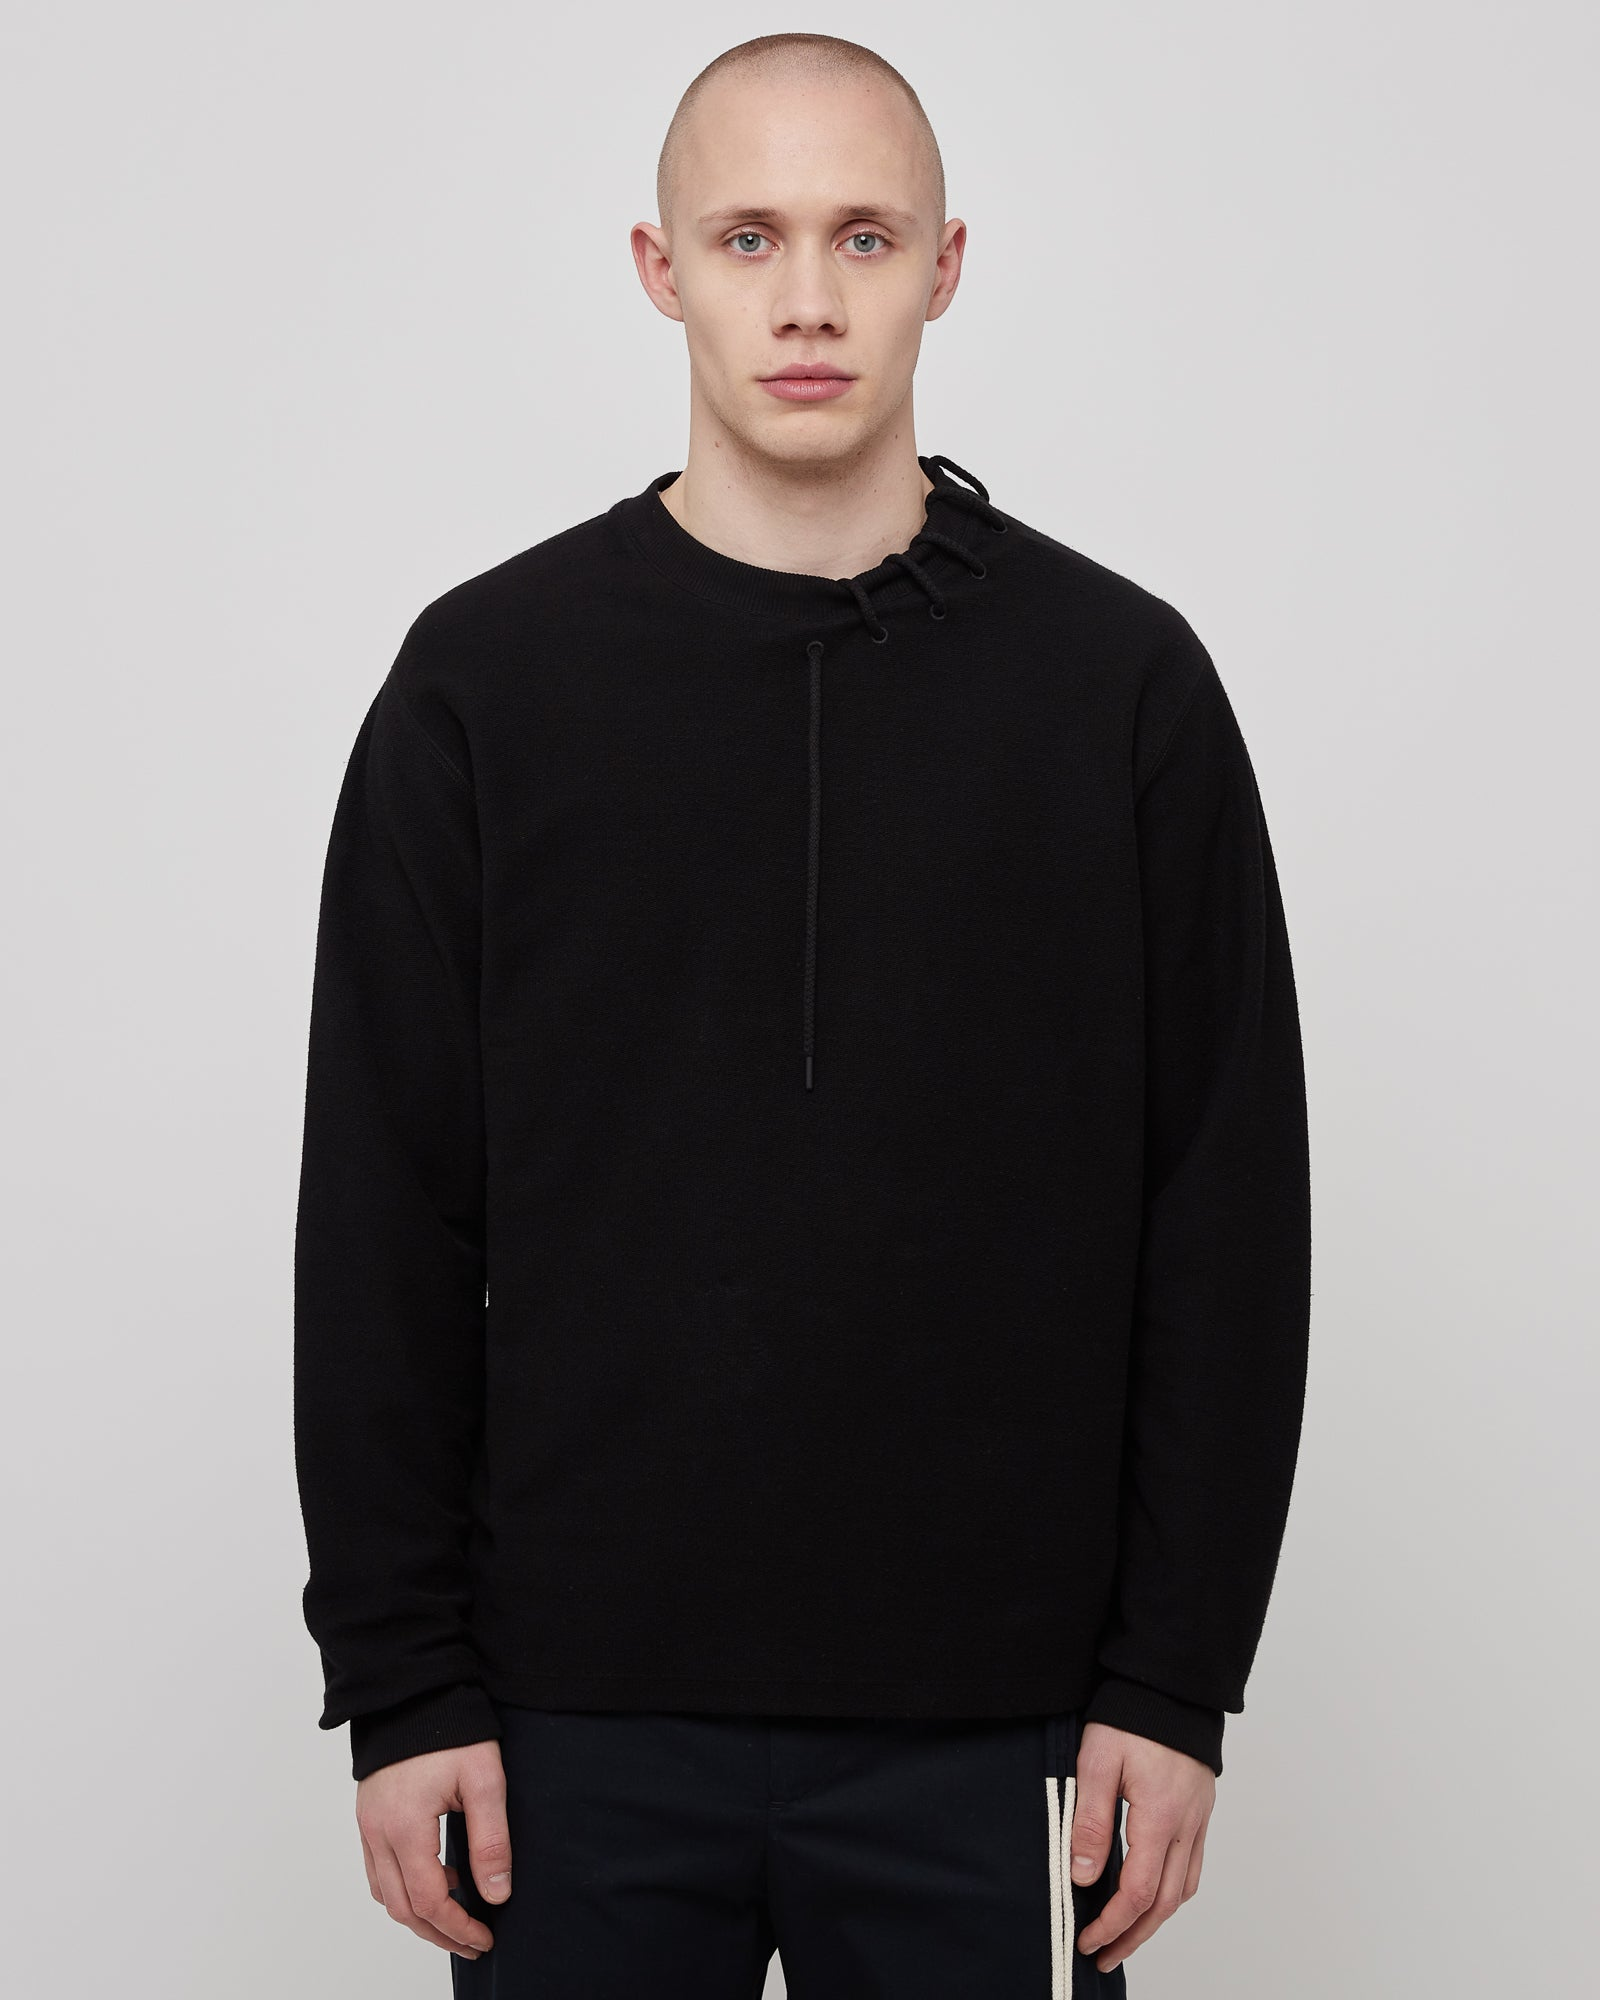 Laced Sweatshirt in Black